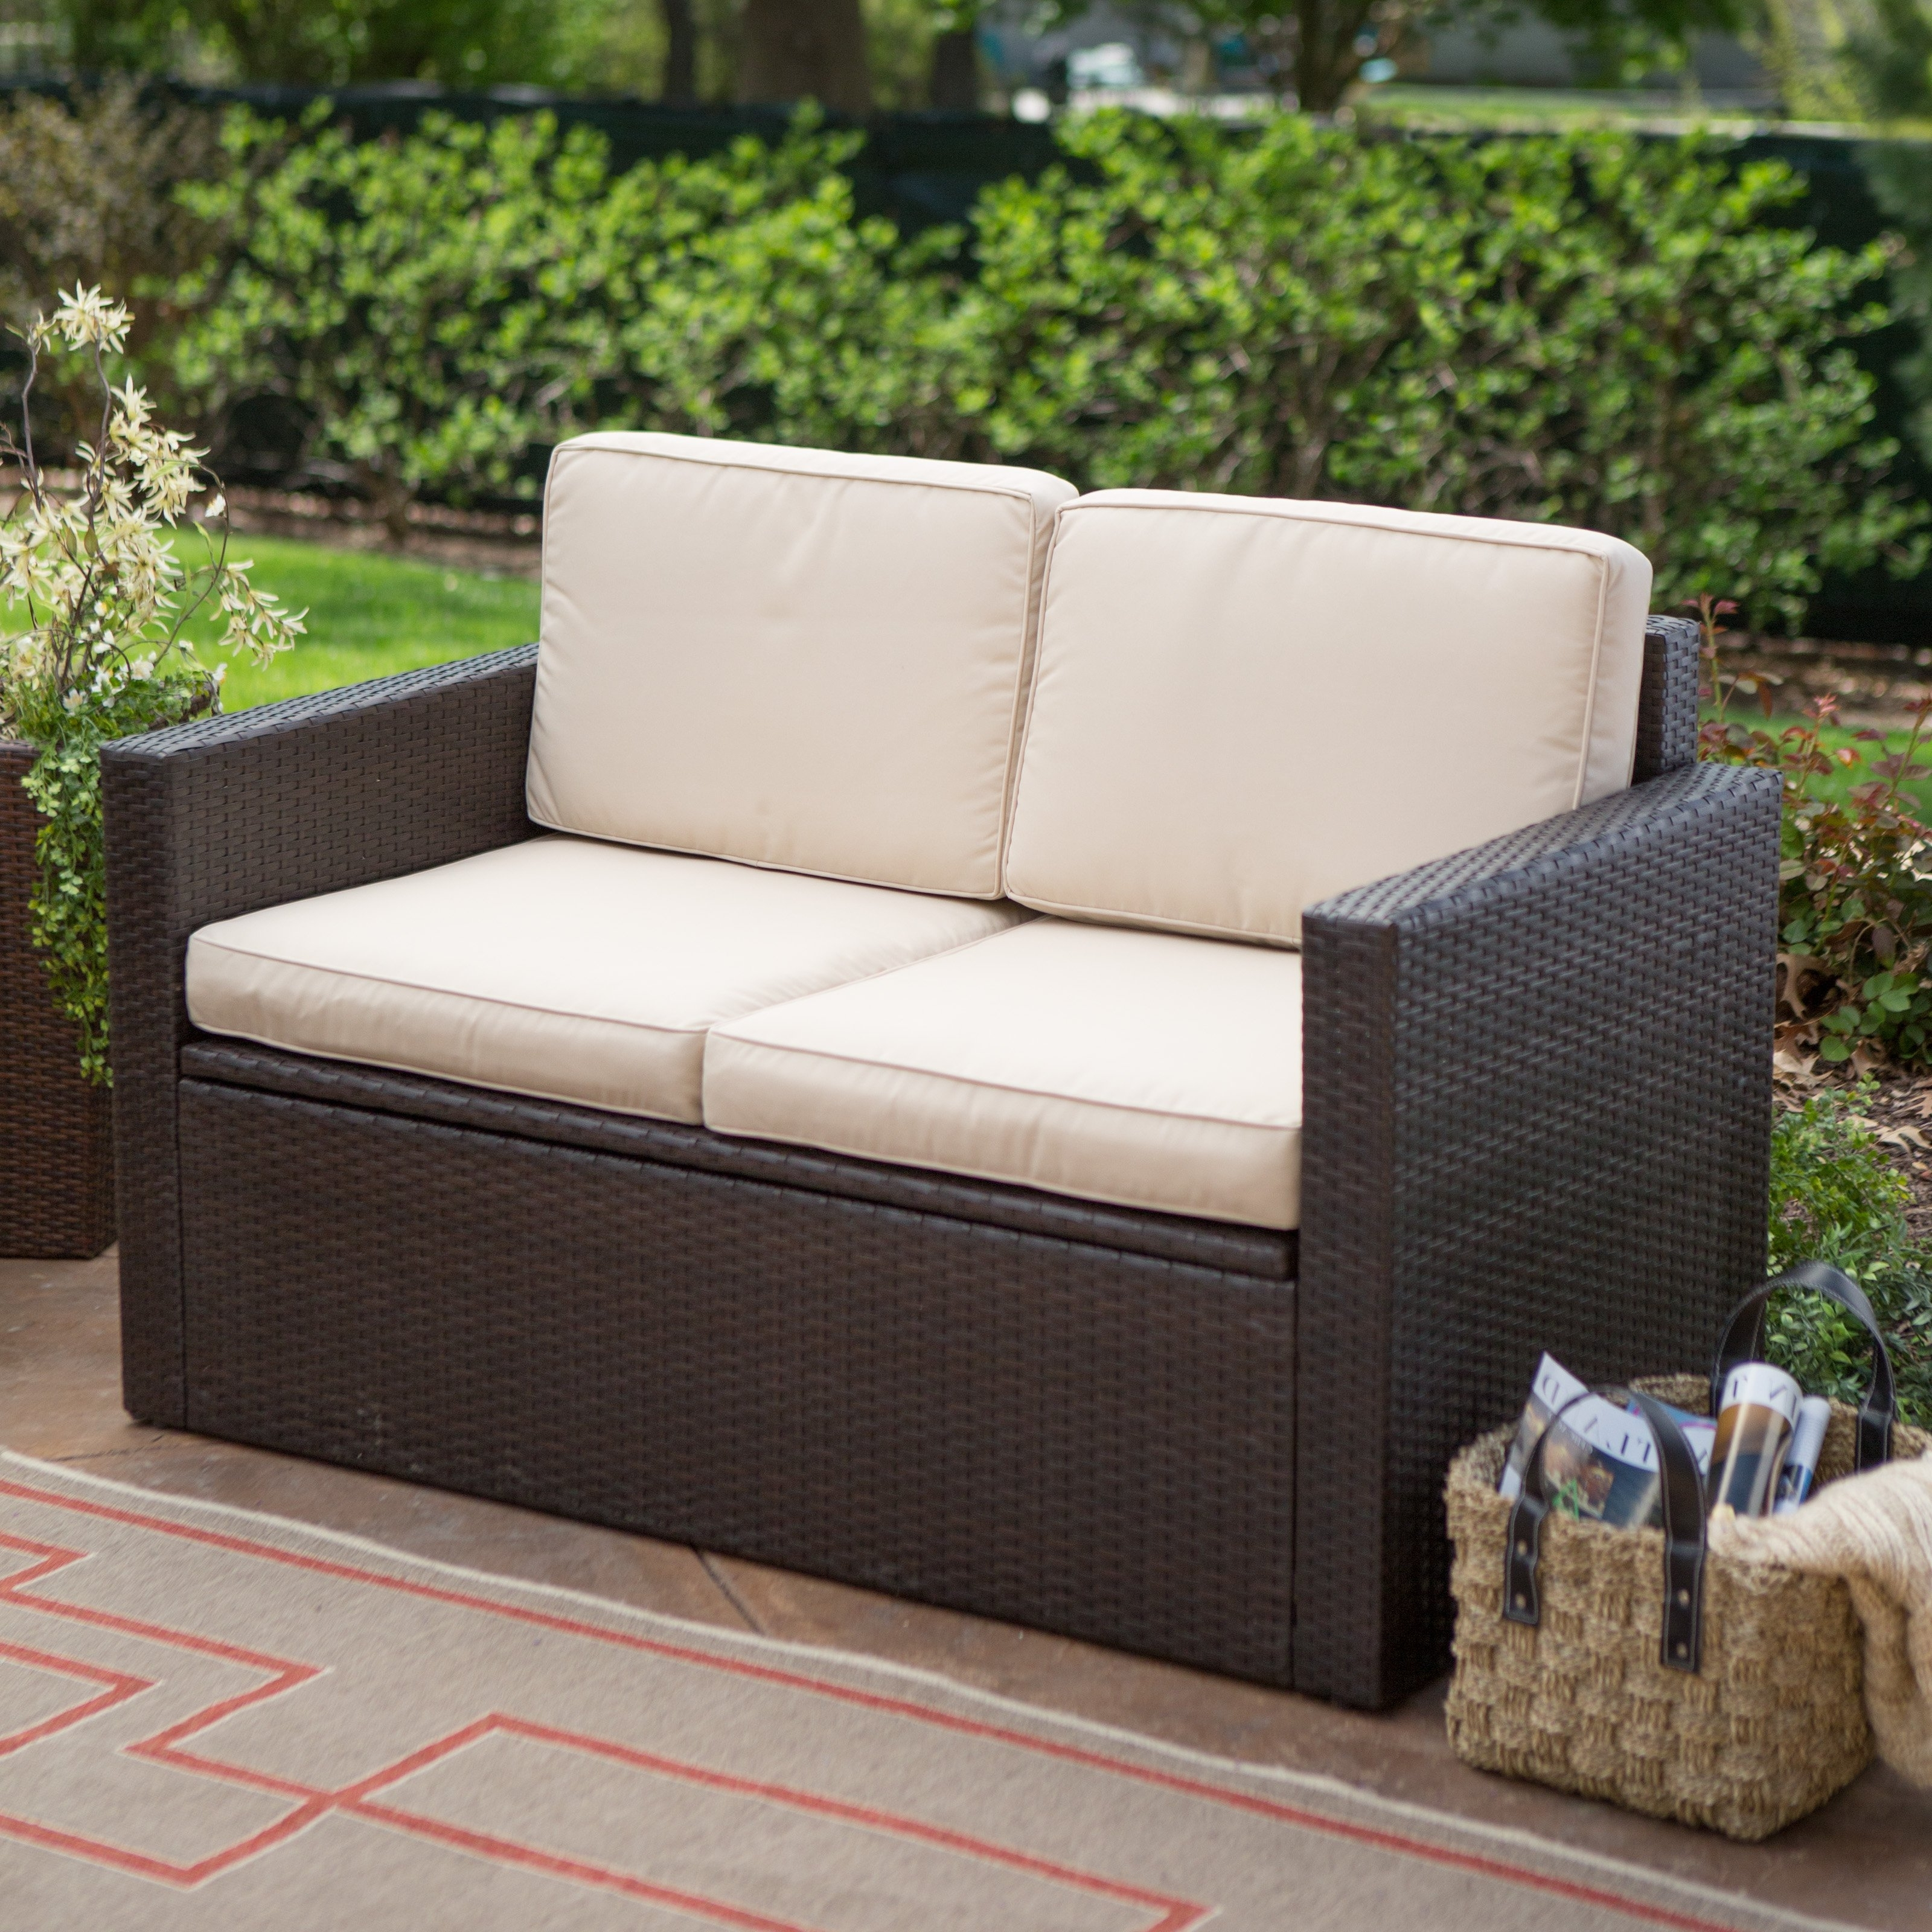 Patio Conversation Sets With Storage For Famous Coral Coast Berea Wicker 4 Piece Conversation Set With Storage (View 5 of 15)